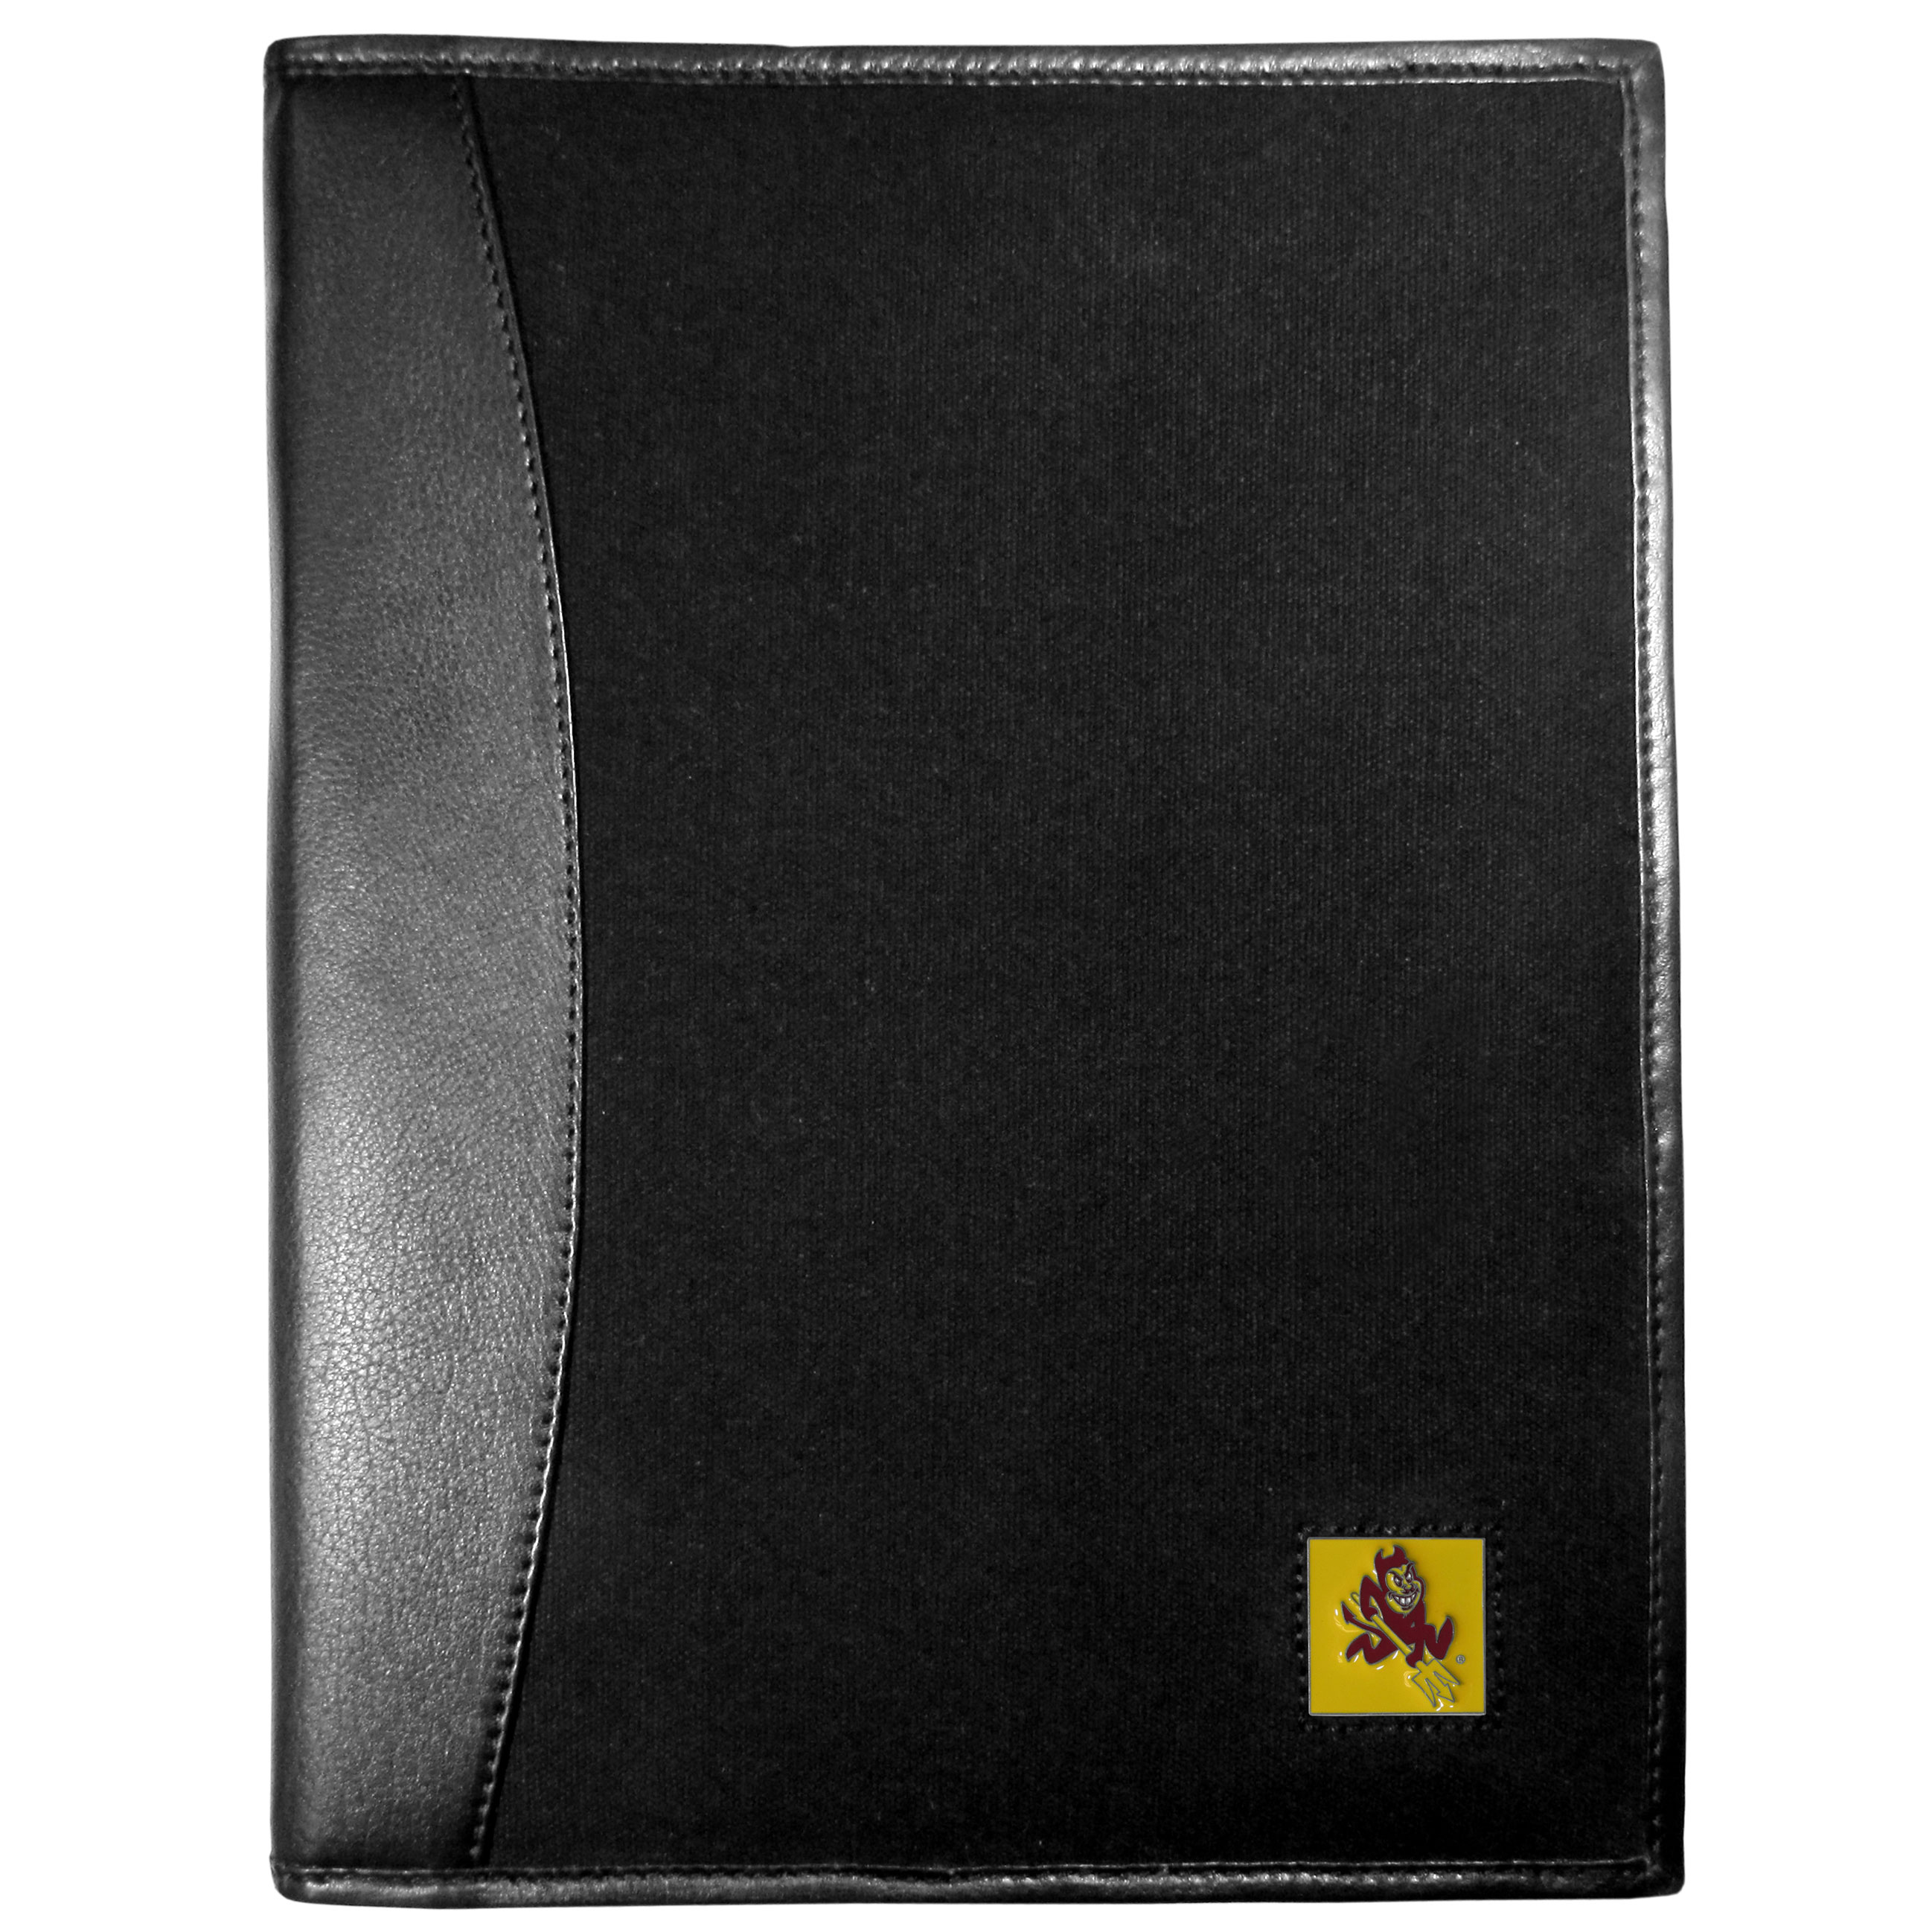 Arizona St. Sun Devils Leather and Canvas Padfolio - Our leather and canvas padfolio perfectly blends form and function. The attractive portfolio is bound in fine grain leather with an attractive canvas finish and the interior is a soft nylon. This high quality business accessory also features a fully cast metal Arizona St. Sun Devils emblem that is subtly set in the corner of the organizer. It is packed with features like 6 card slots for badges, business cards, hotel keys or credit cards and ID with a large pocket for loose papers and a writing tablet slot making it a must-have for the professional on the go.